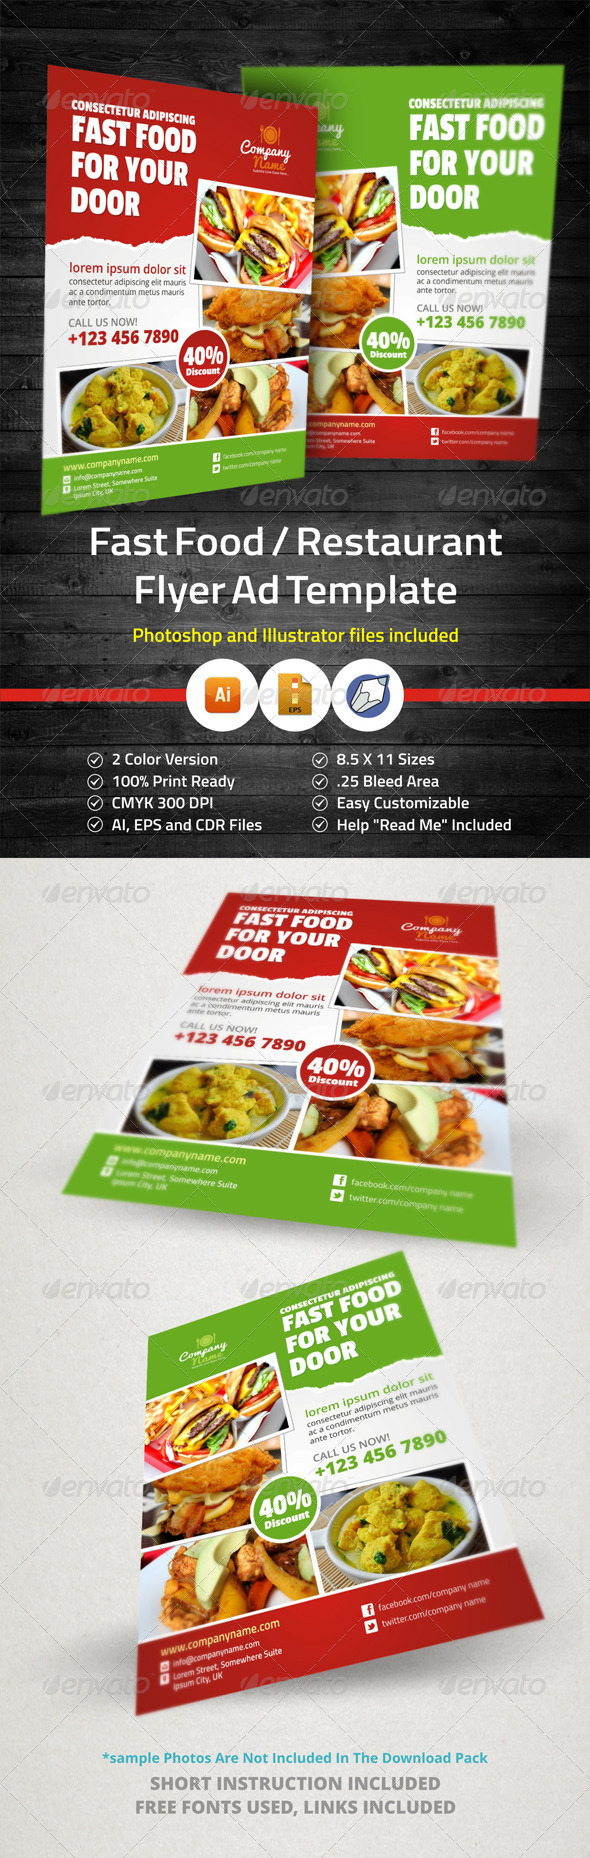 GraphicRiver Fast Food Restaurant Flyer Ad Template 5926987